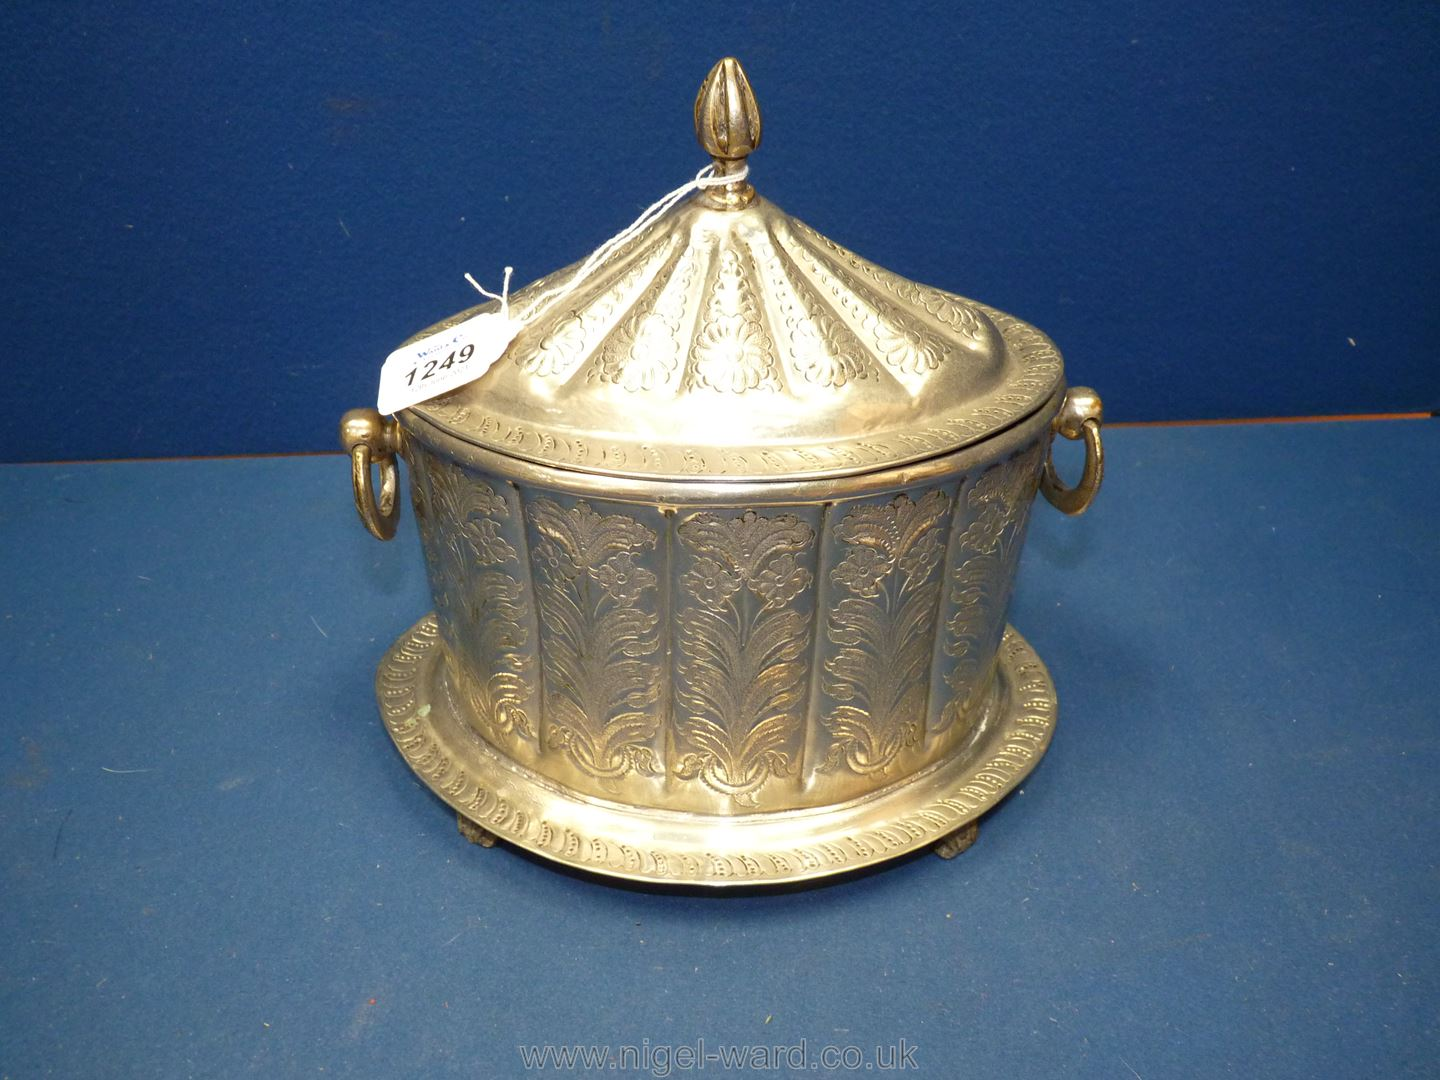 An Ottoman white metal tea caddy or box engraved with floral design,